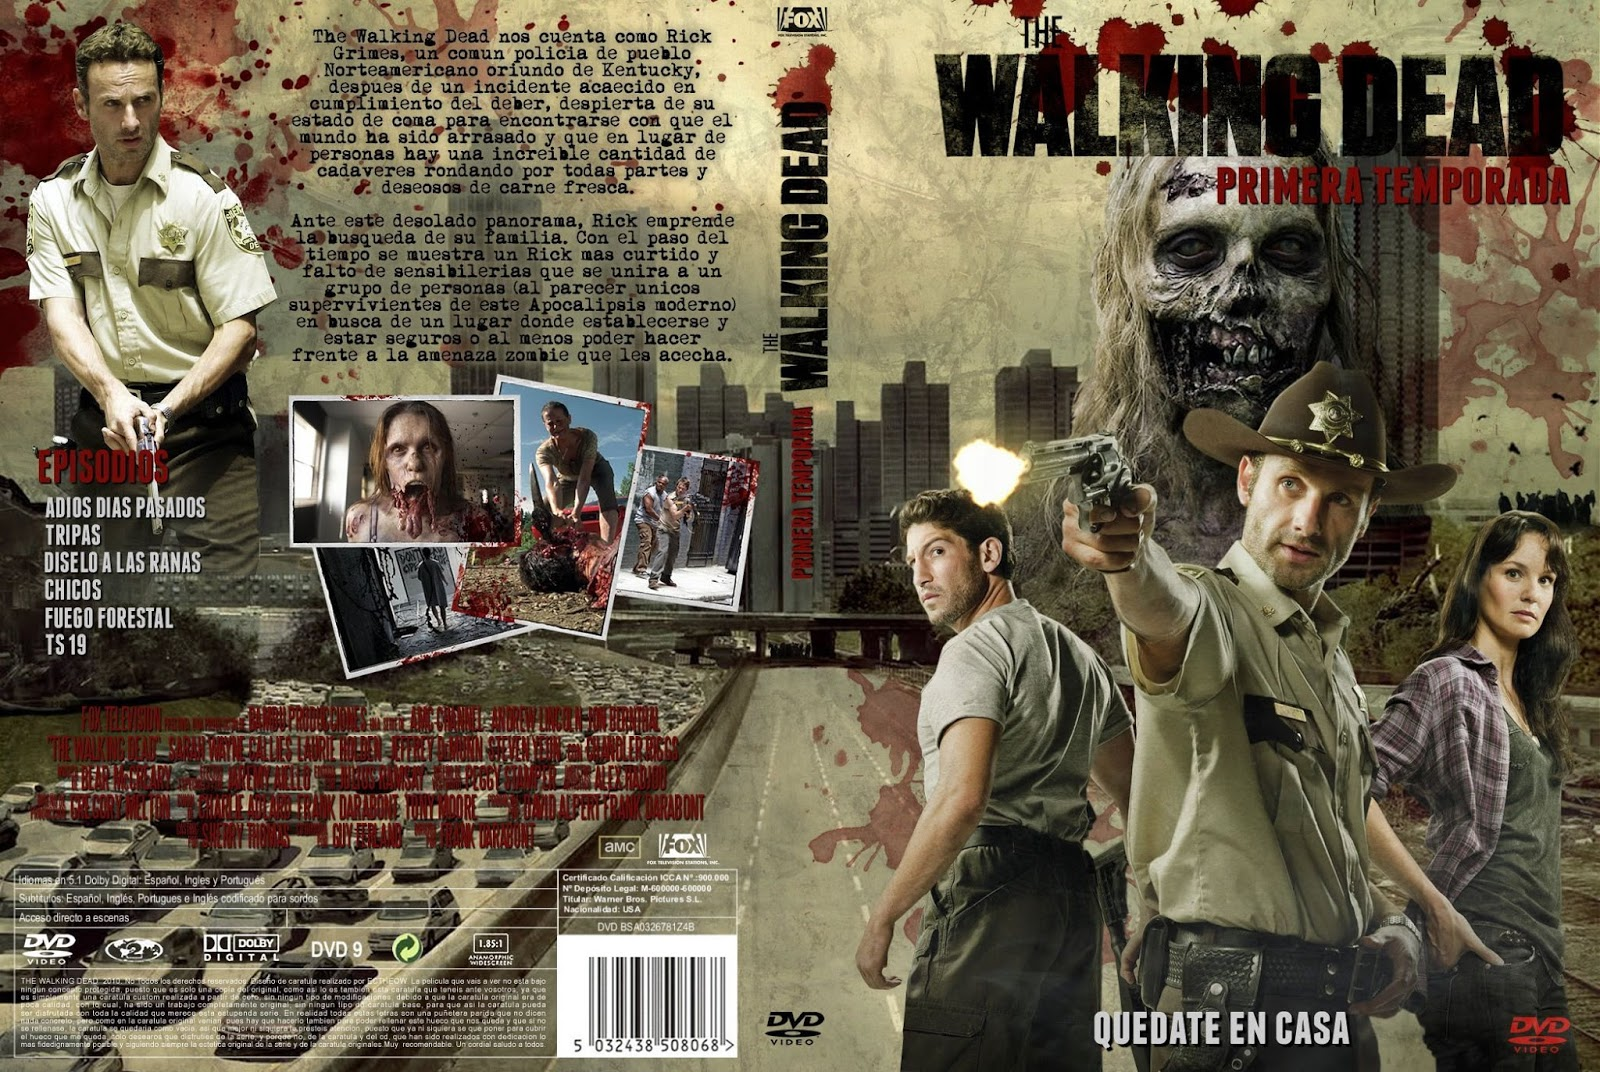 The Walking Dead [Temporada 1] [Latino] [DVD-Rip]